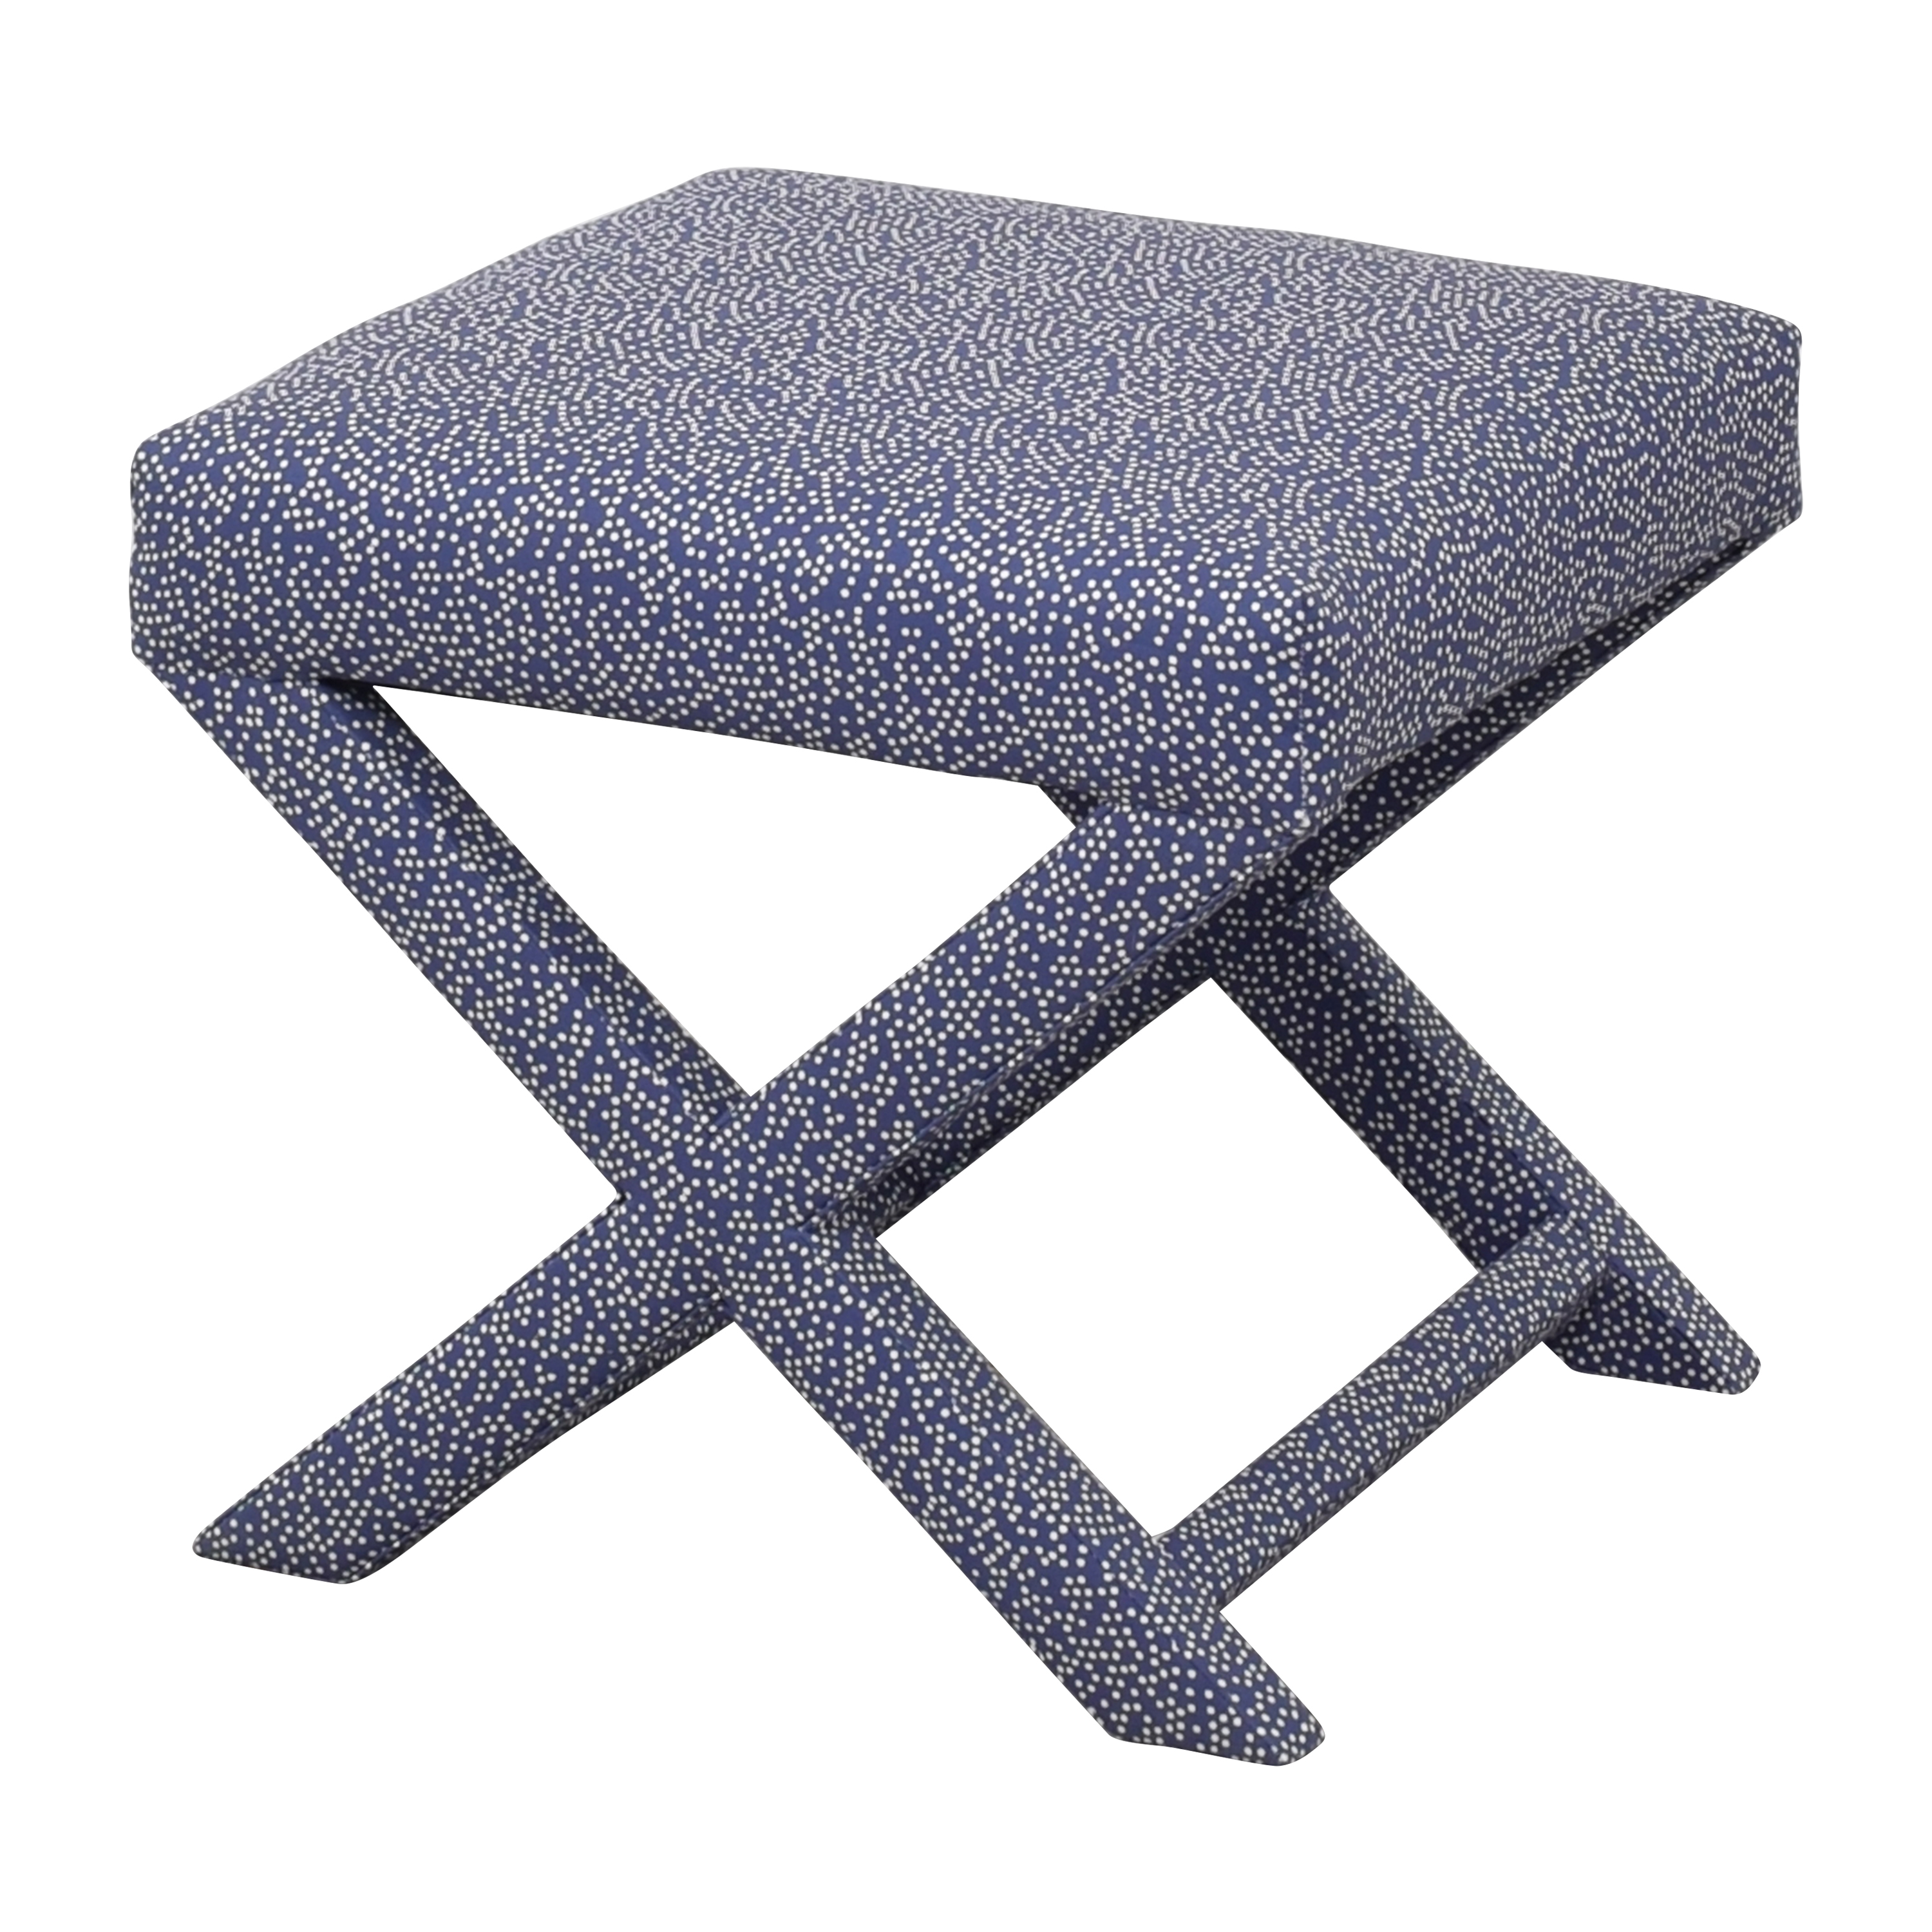 The Inside The Inside Scattered Dot X Bench  on sale